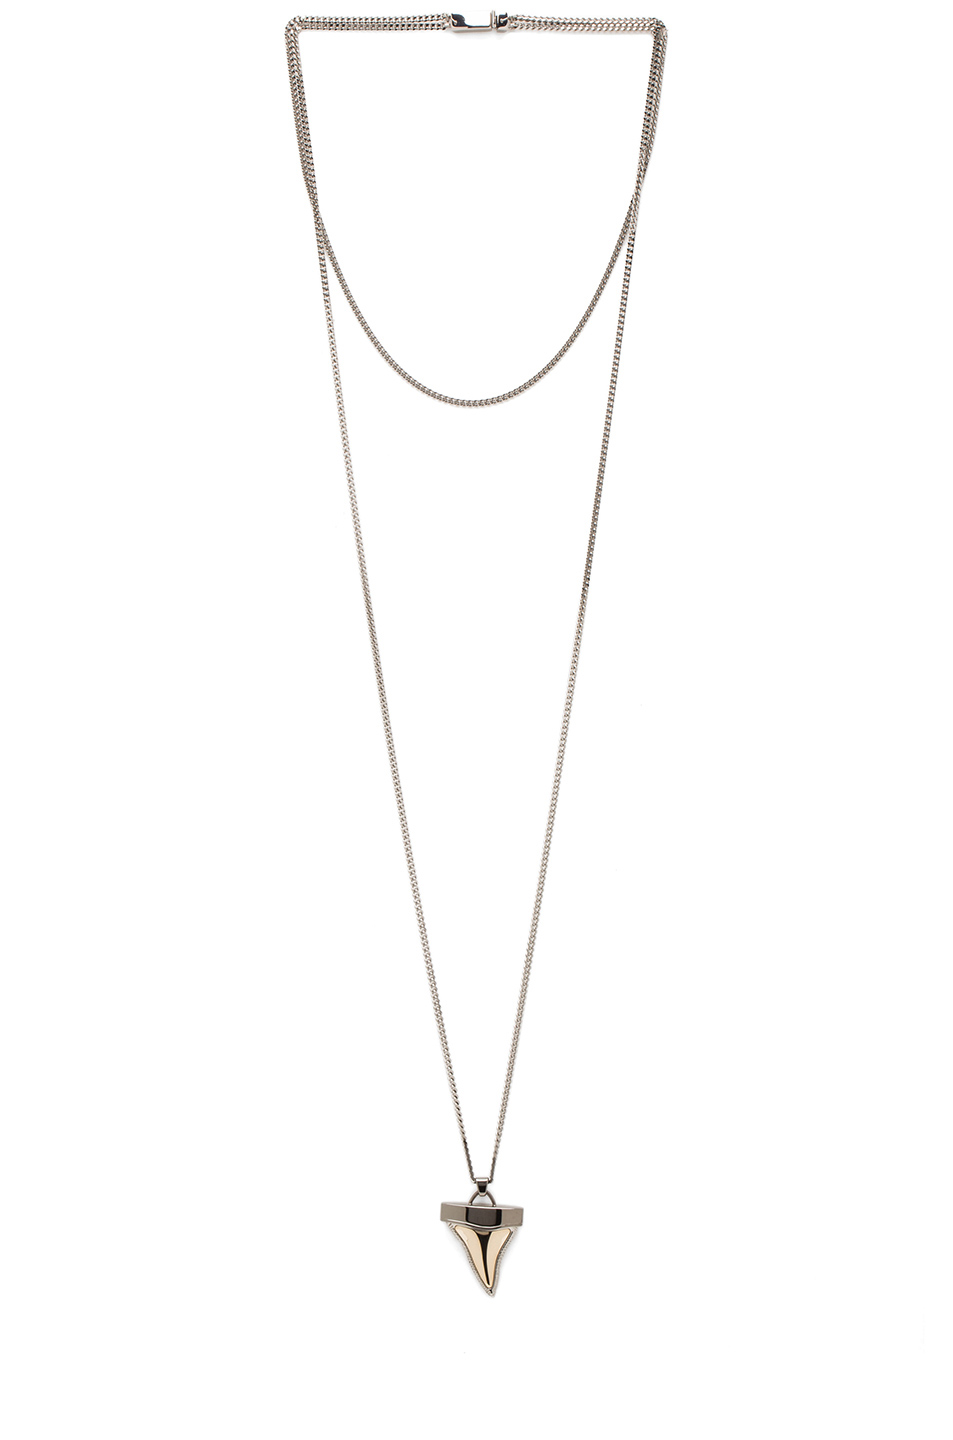 GIVENCHY|Small Metal Shark Tooth Necklace in Silver & Gold